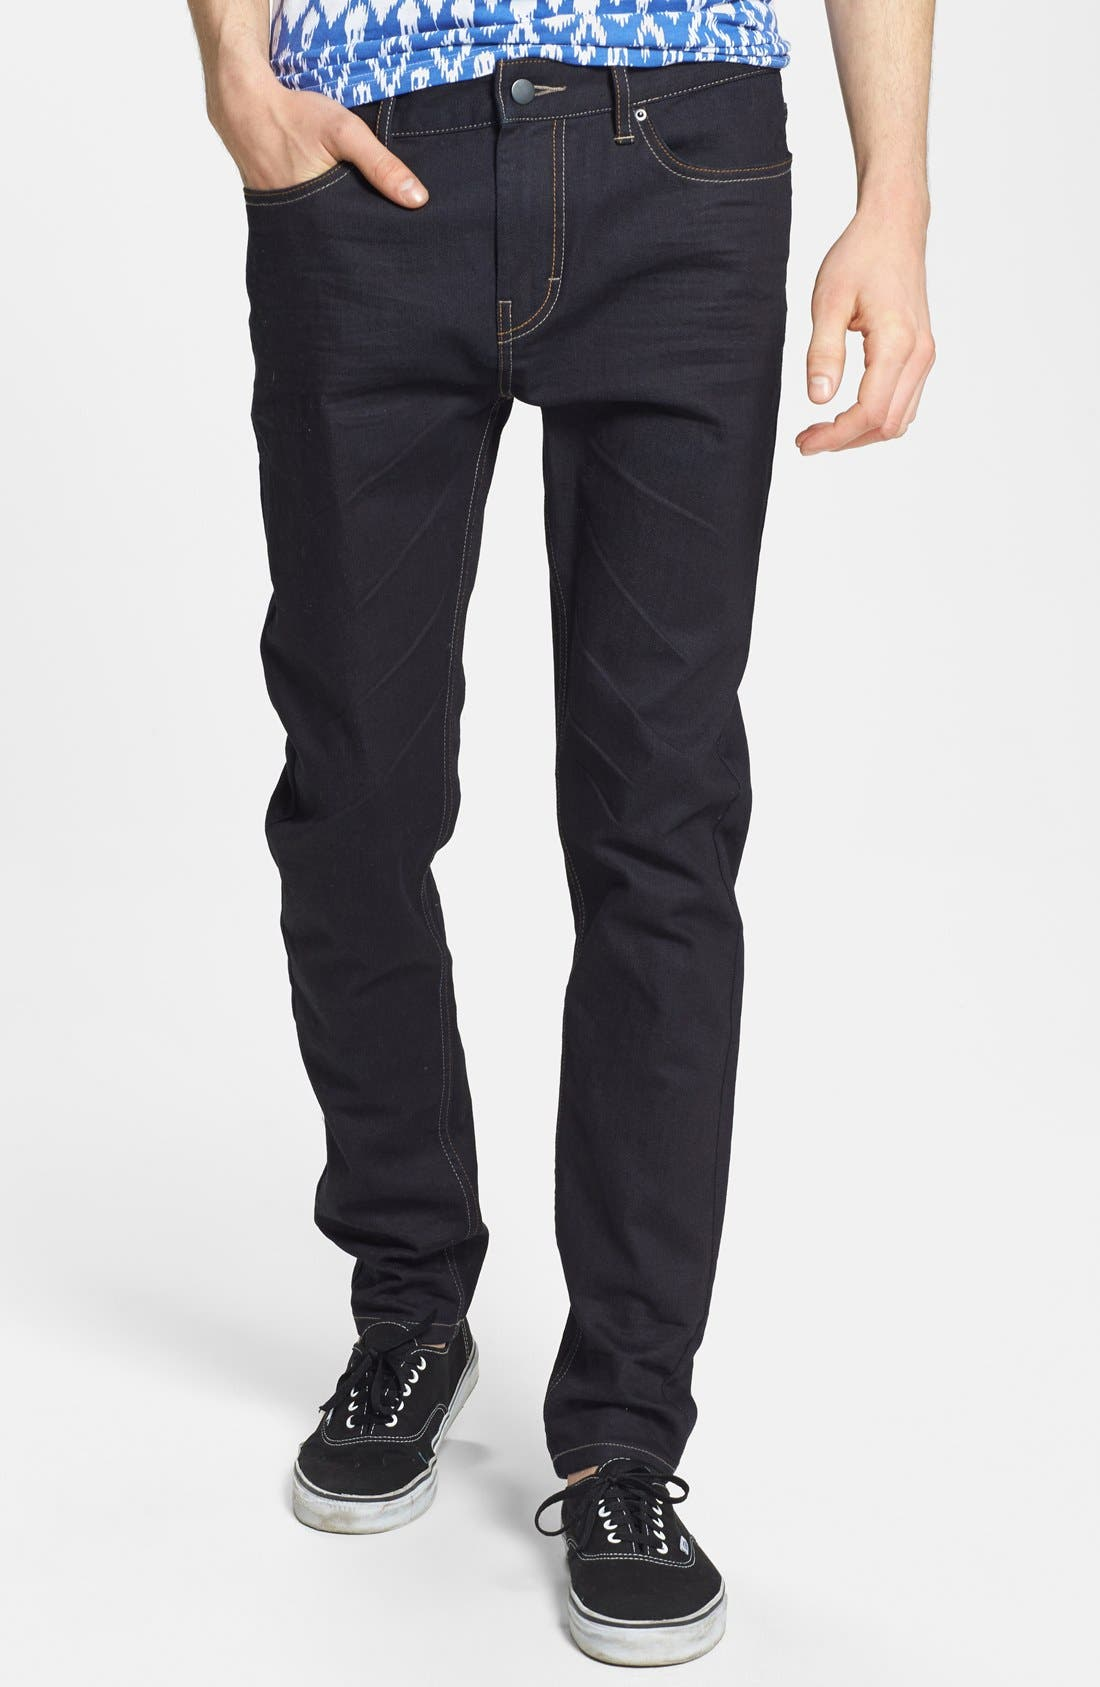 Alternate Image 1 Selected - Topman Coated Stretch Skinny Fit Jeans (Dark Blue)